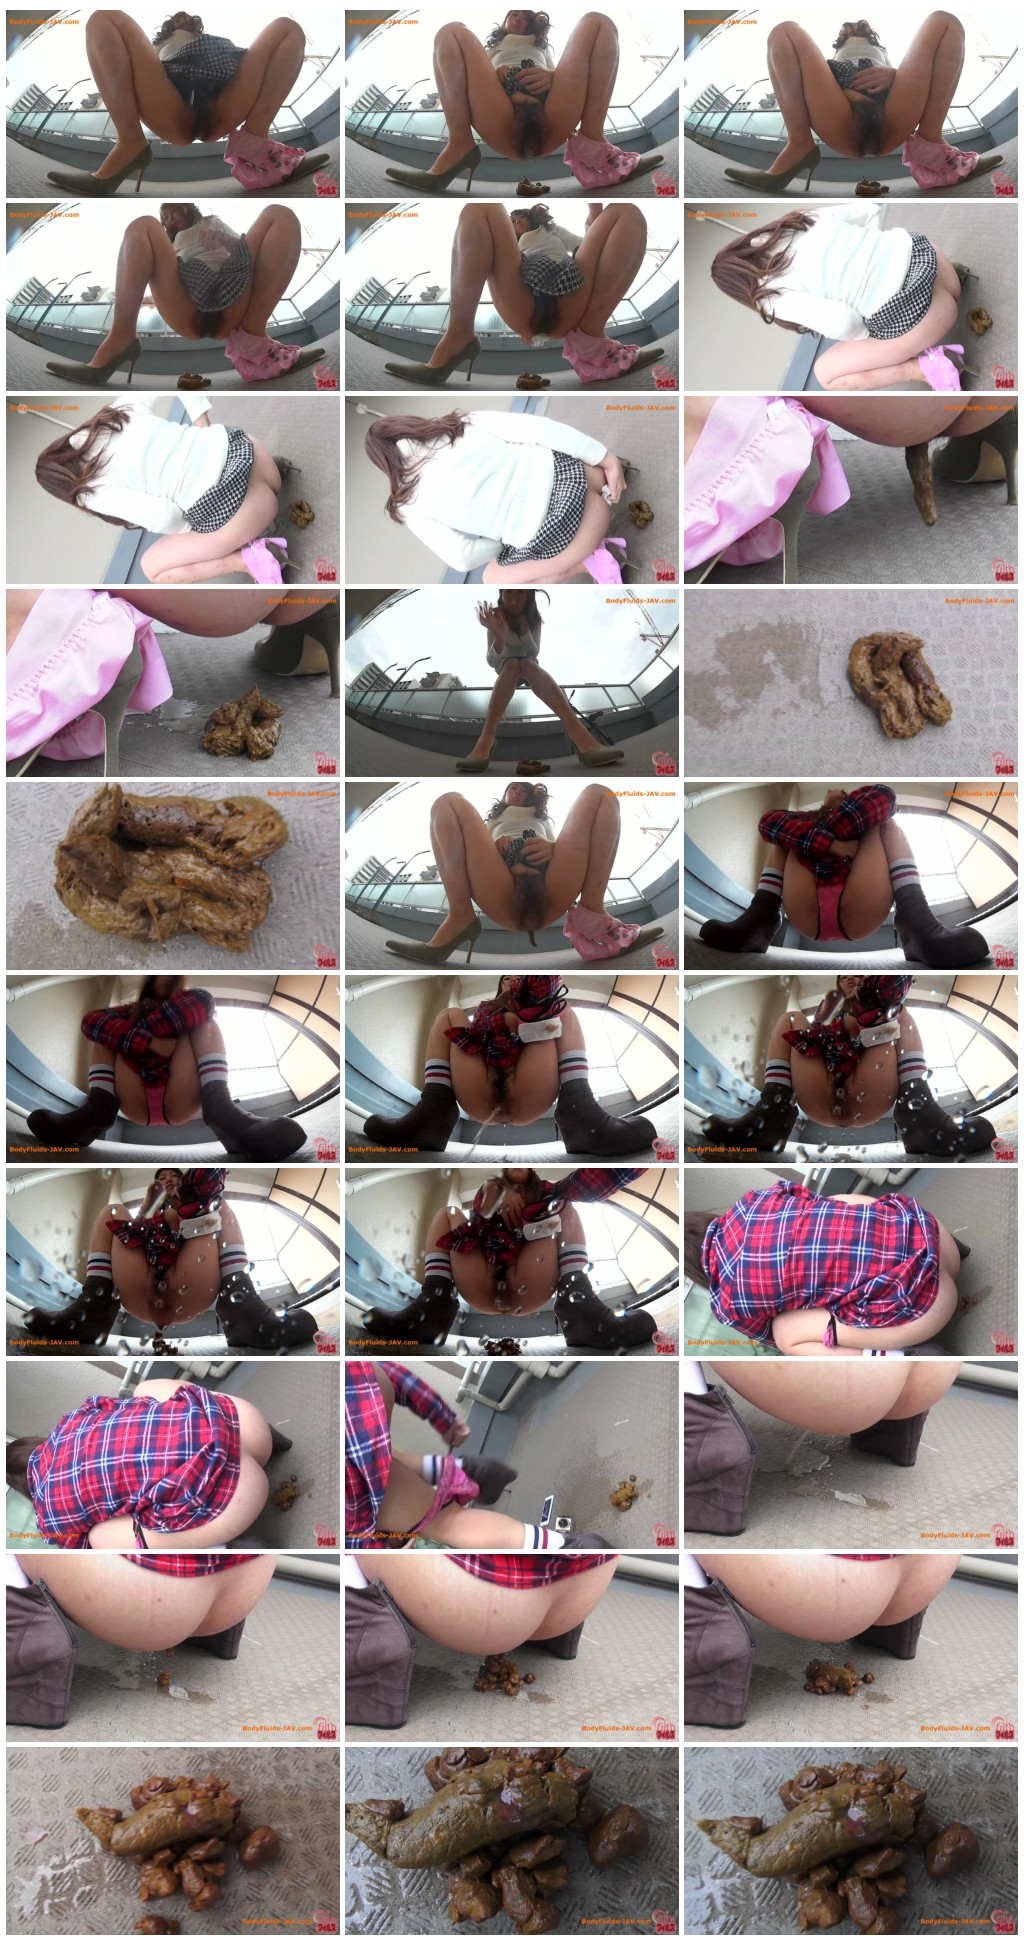 [JVC - 0097] Girls with hairy pussy defecates on staircase landing. [HD 1080p]